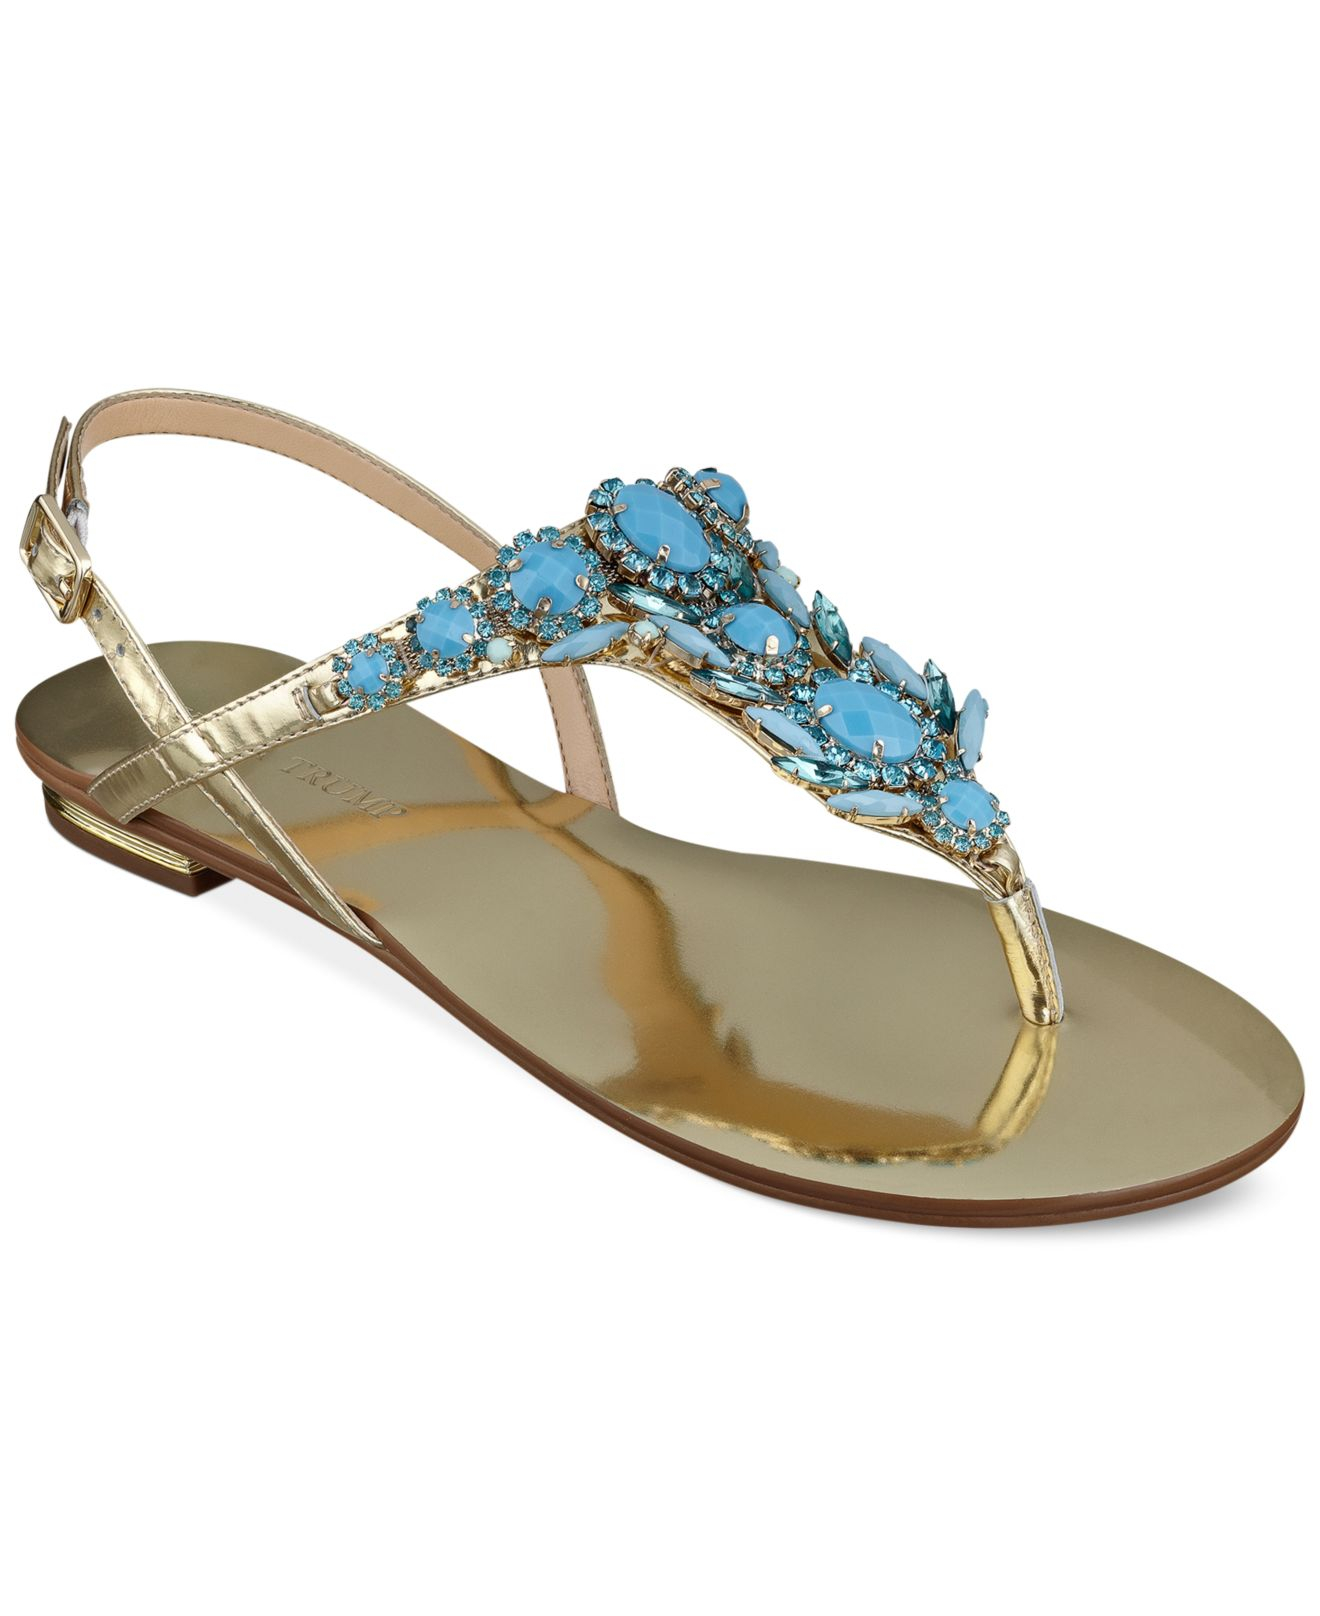 755bcb40e Lyst - Ivanka Trump Fona Jeweled Thong Sandals in Blue